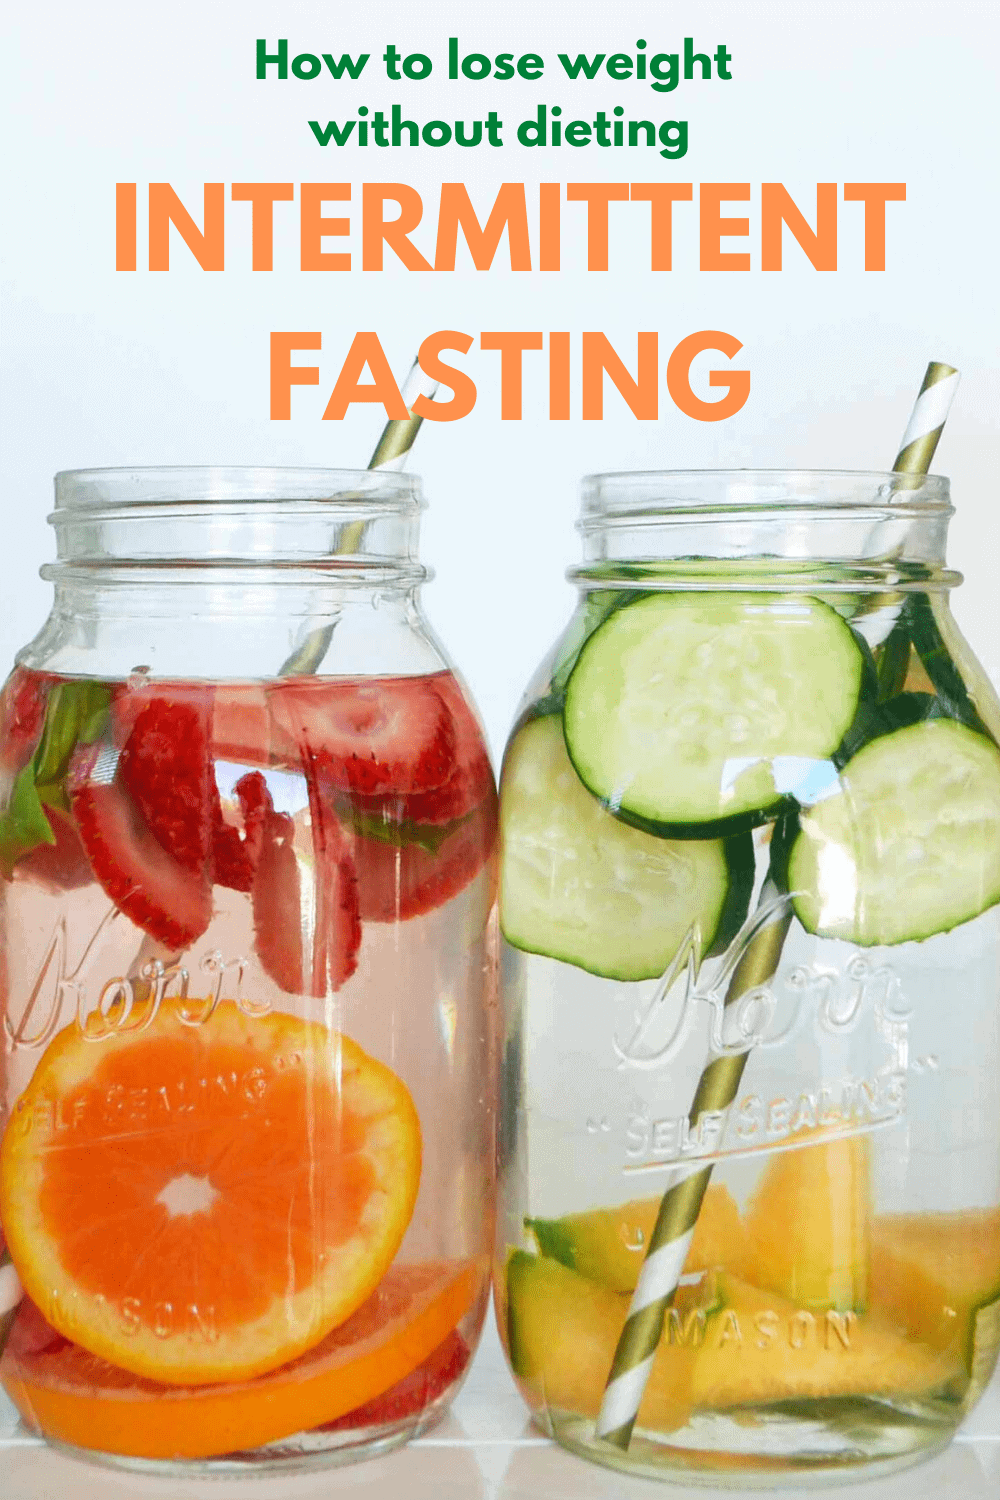 Intermittent Fasting Results. How I lost over 50 lbs. by following an intermittent fasting program. It is great for weight loss without dieting. #fasting #fast #intermittentfasting #beforeandafter #diet